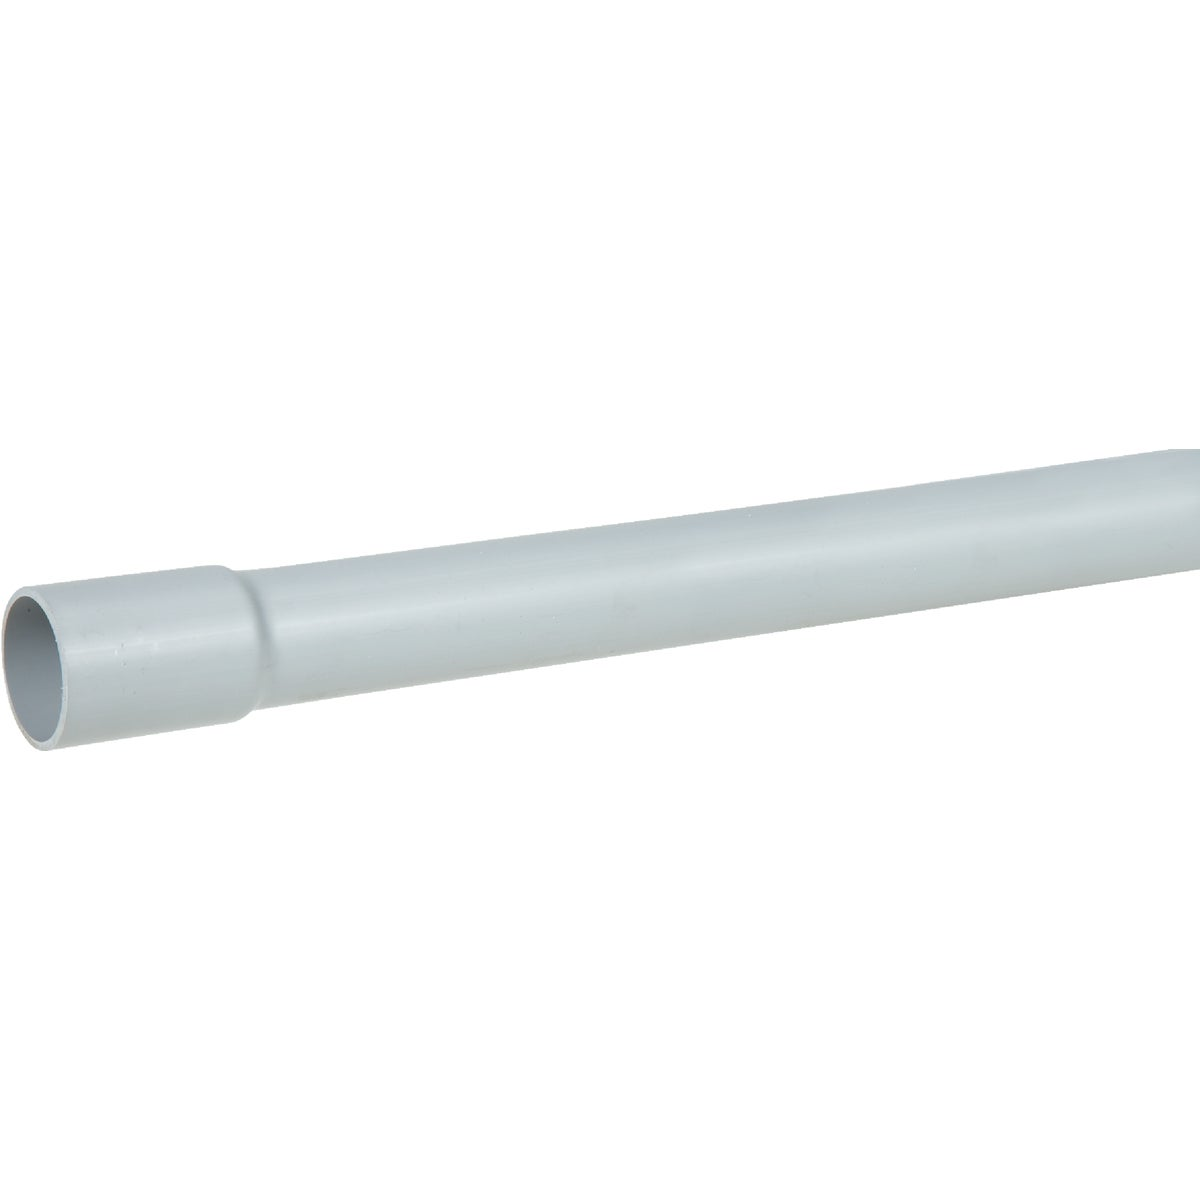 "1/2"" SCH40 10' CONDUIT - 49005-010 by Prime Conduit"